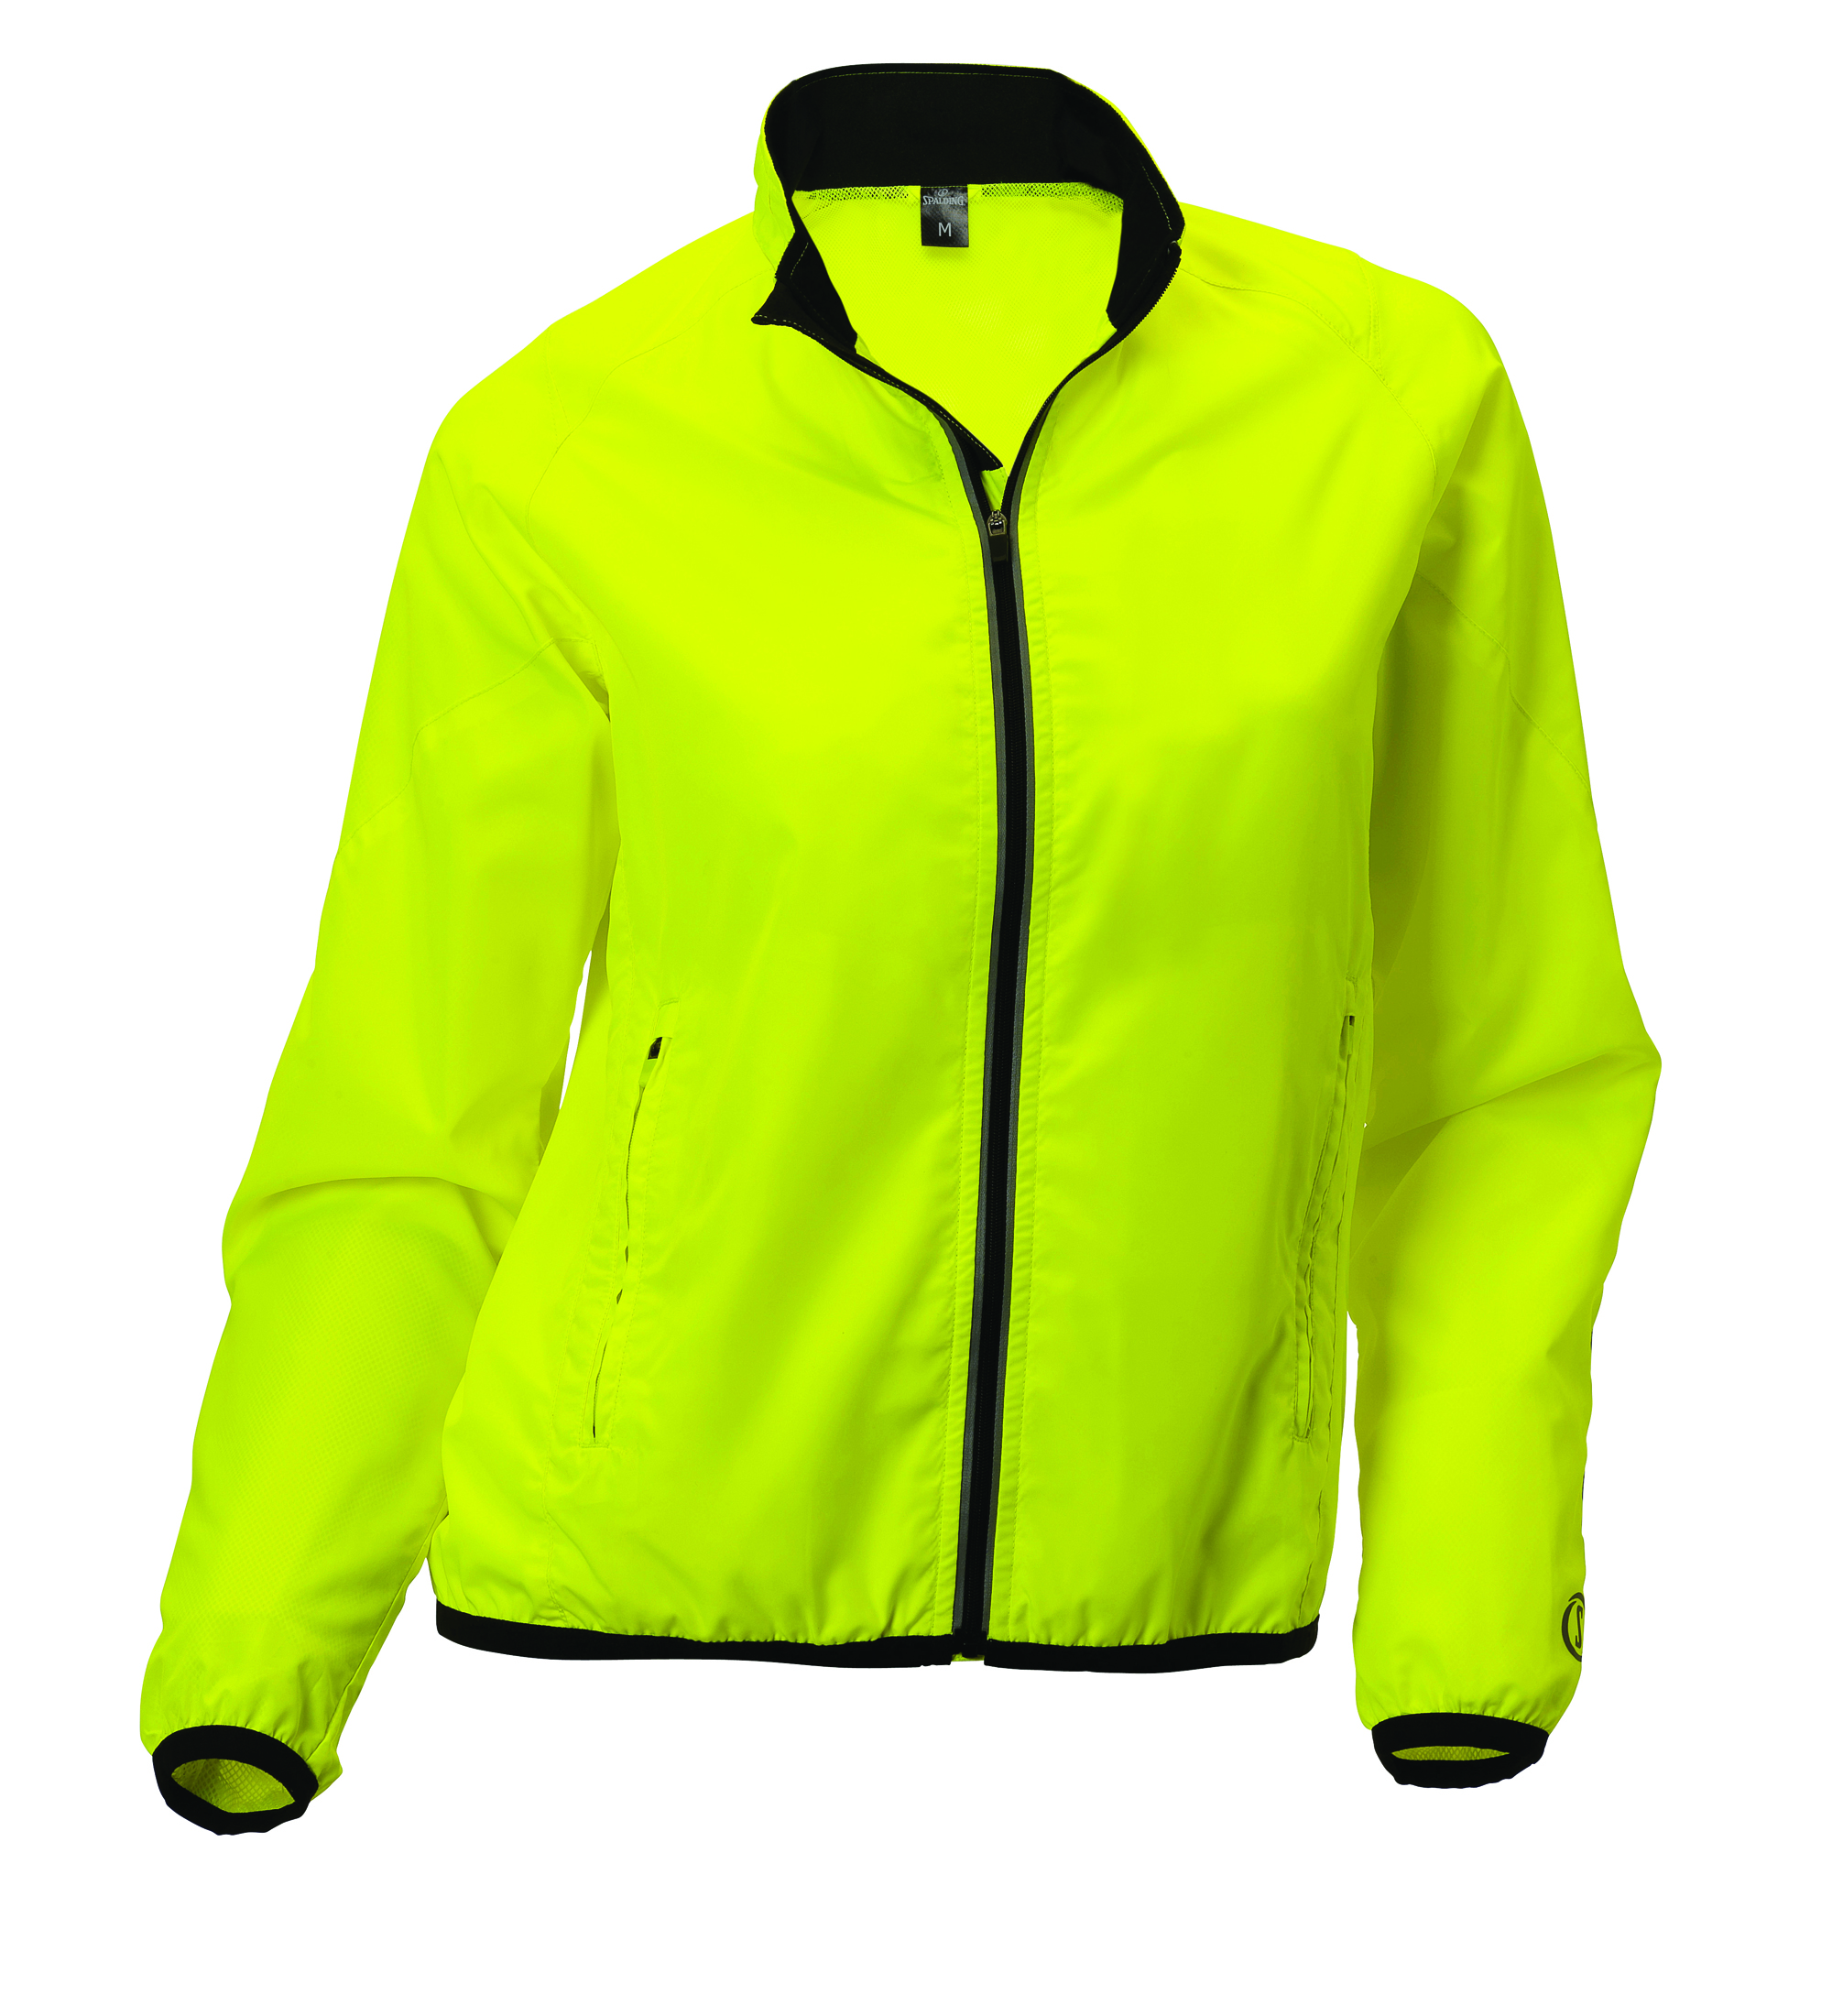 Adrenalin Jacket Women - Night Yellow - L